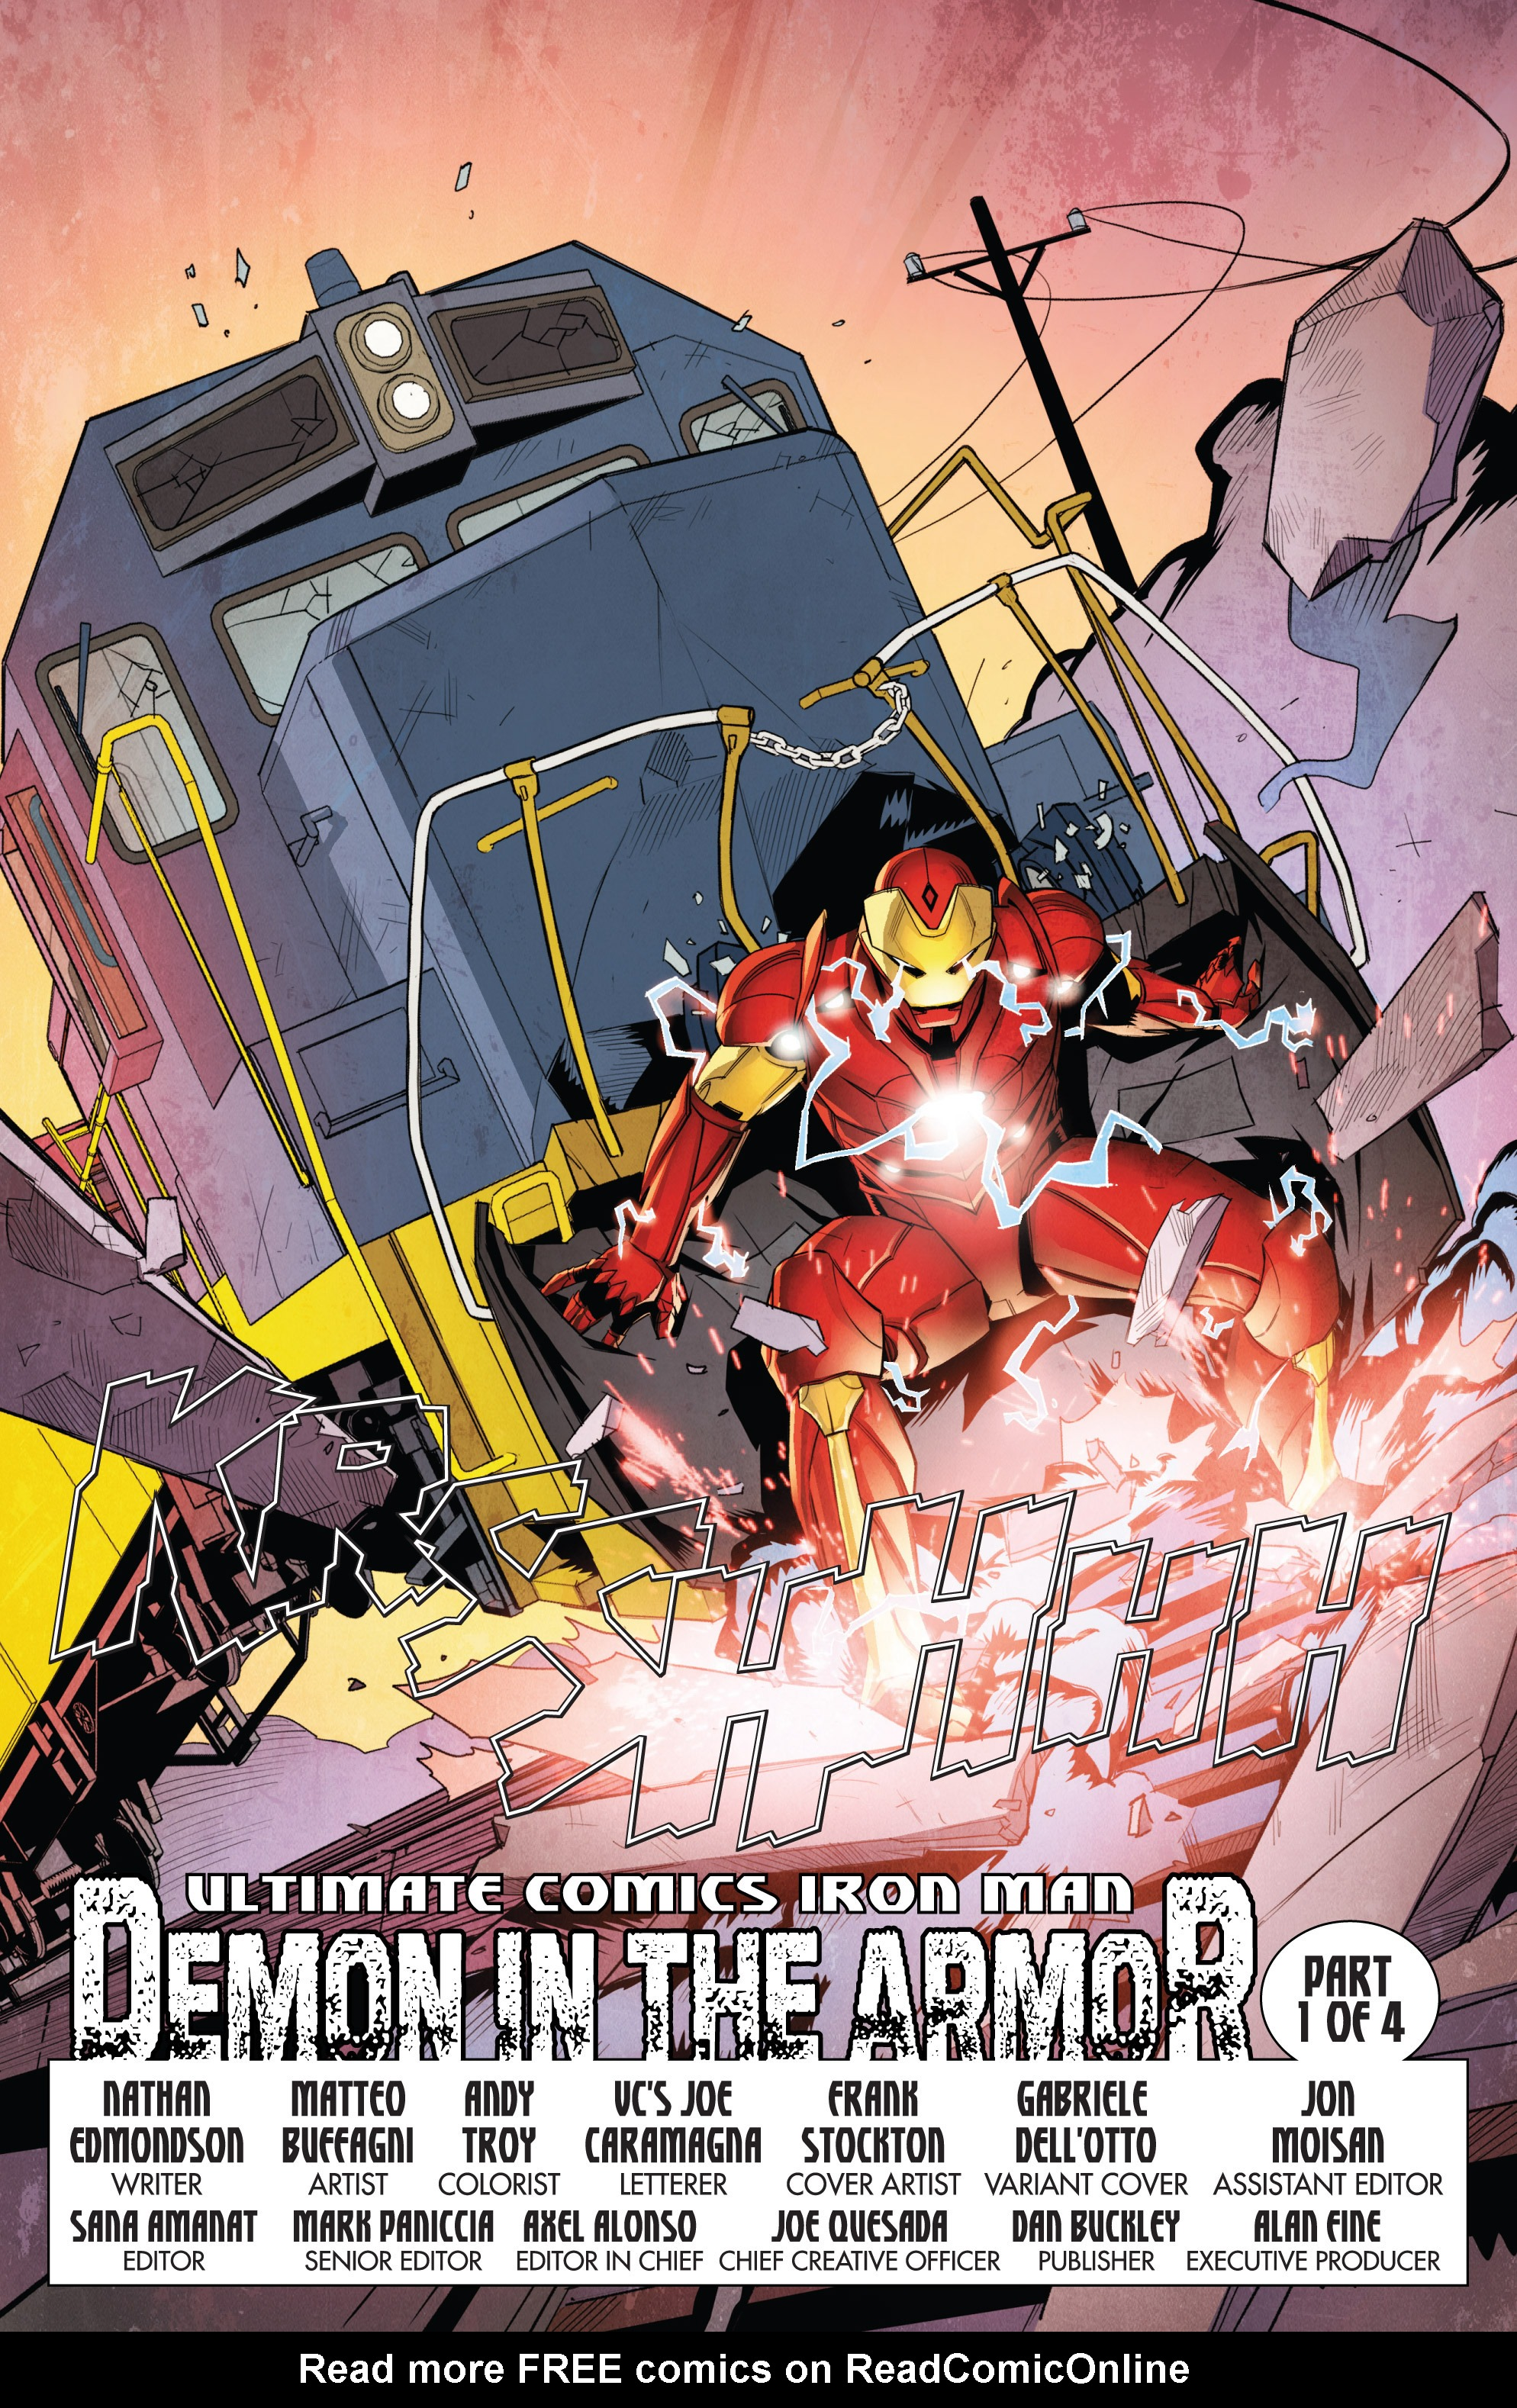 Read online Ultimate Comics Iron Man comic -  Issue #1 - 6